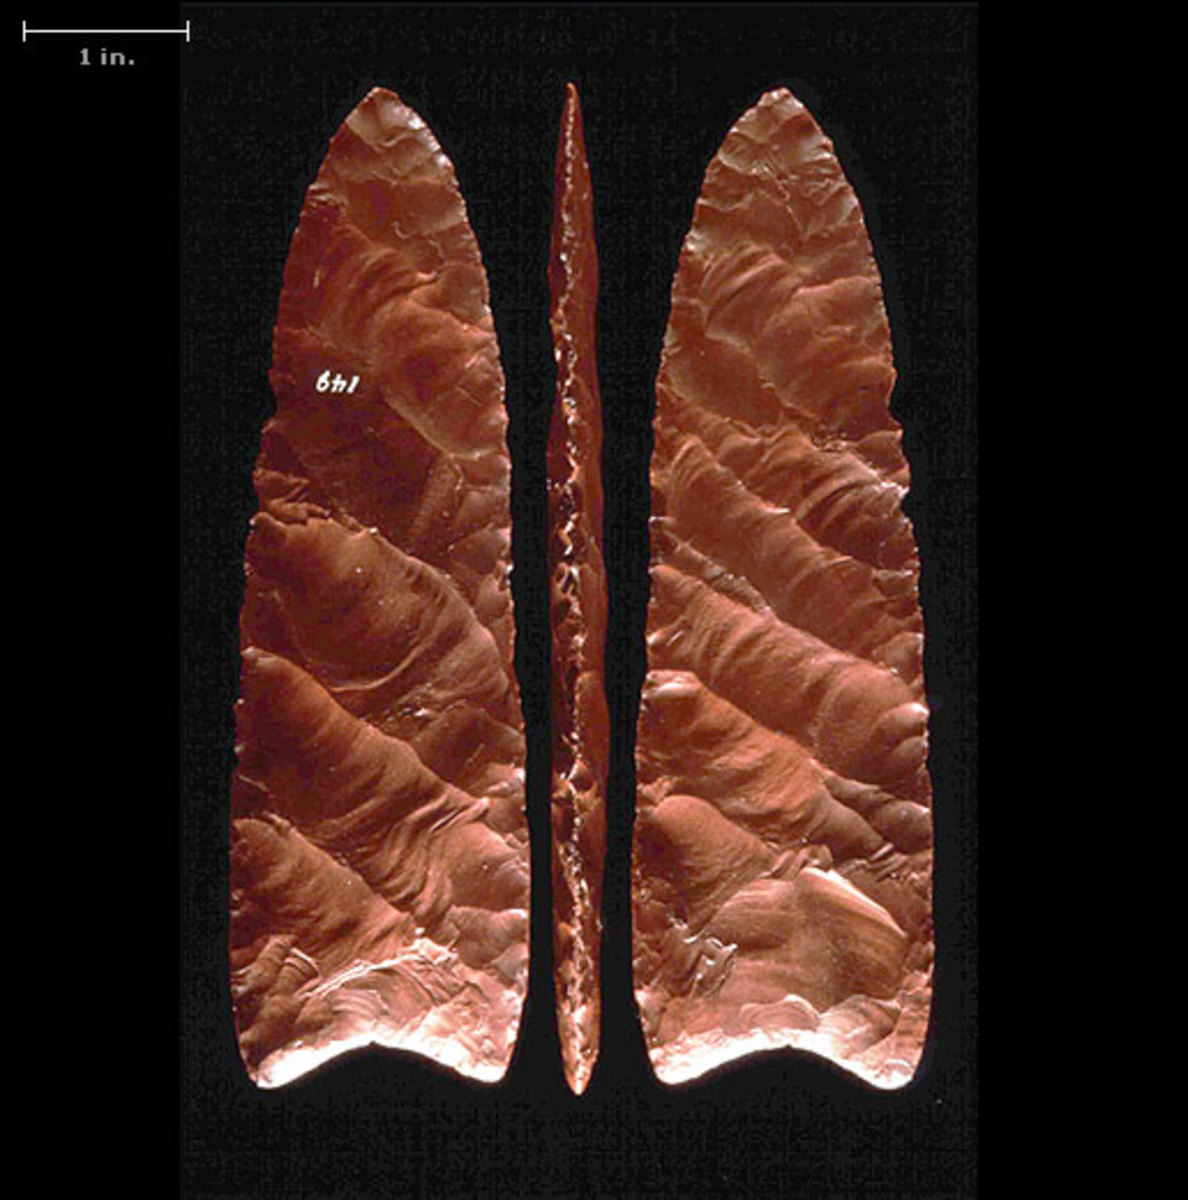 Clovis Points: These Points were strapped to the end of a long stick and used to spear large game animals.